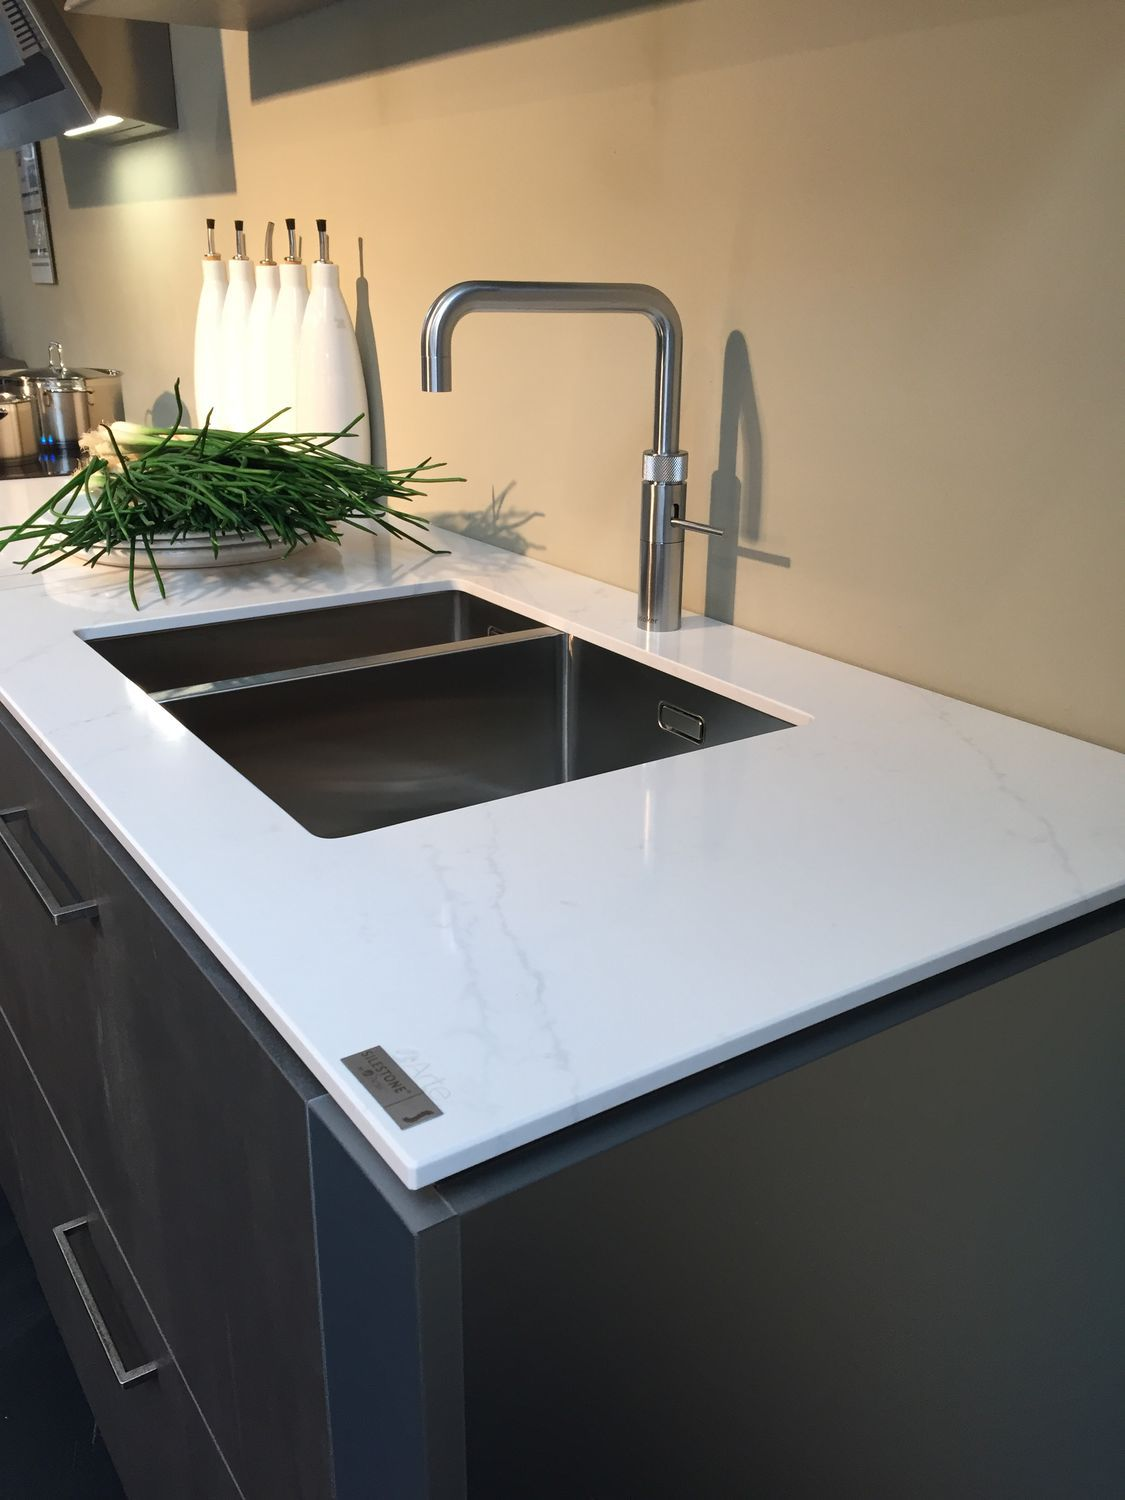 silestone bathroom countertops. Silestone® Countertop / Marble Kitchen White Silestone Bathroom Countertops H